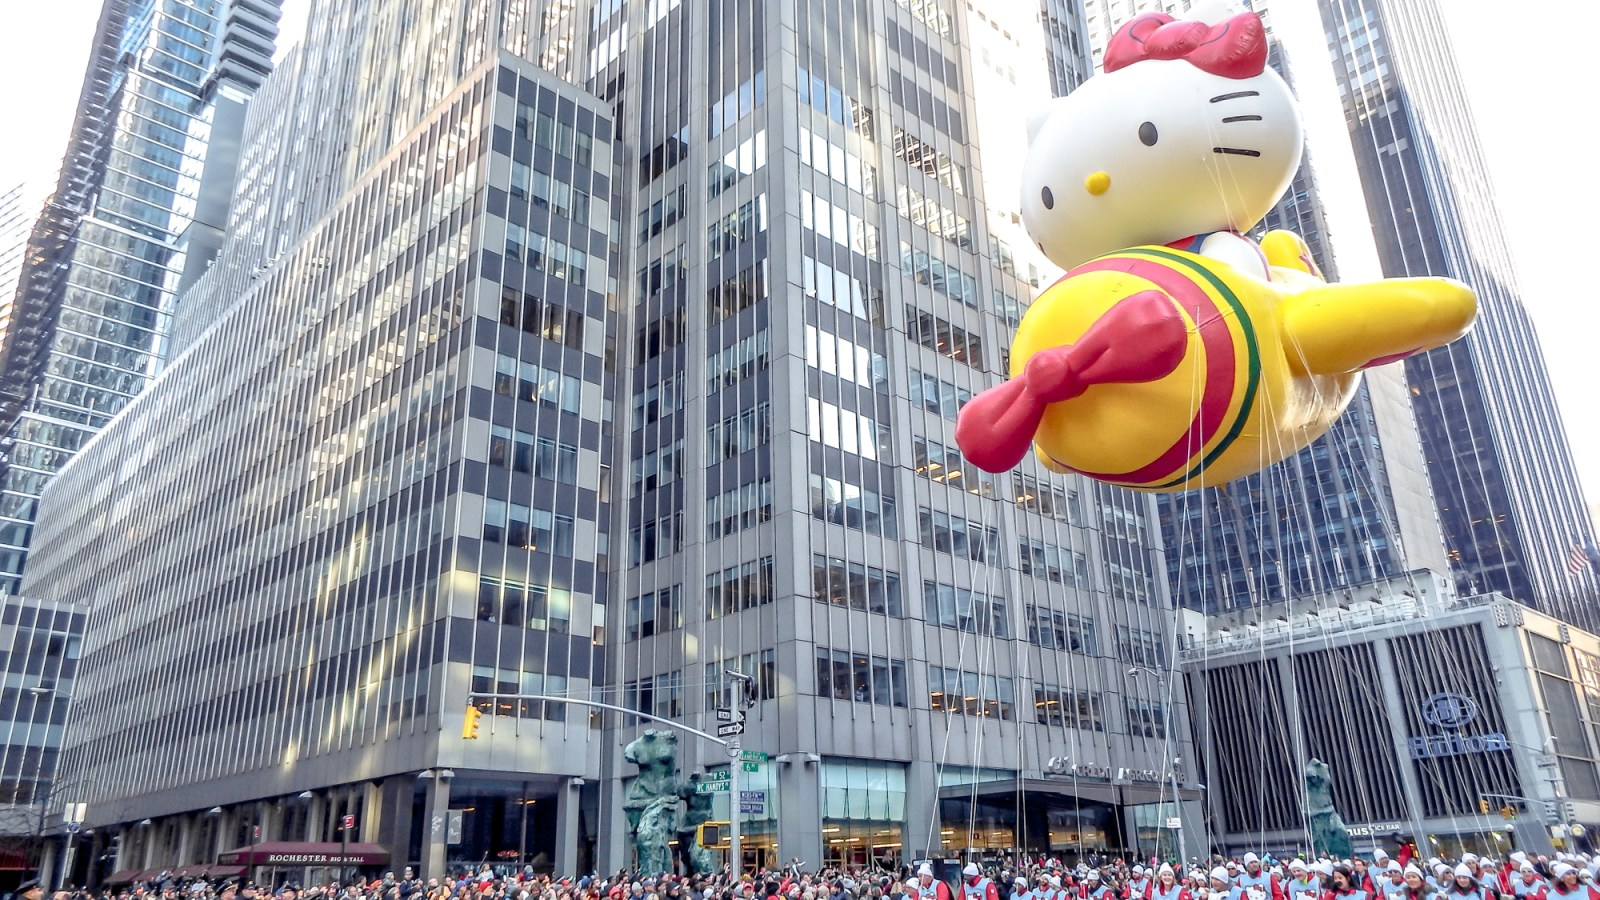 Do This, Not That at the Macy's Thanksgiving Day Parade tips in New York City